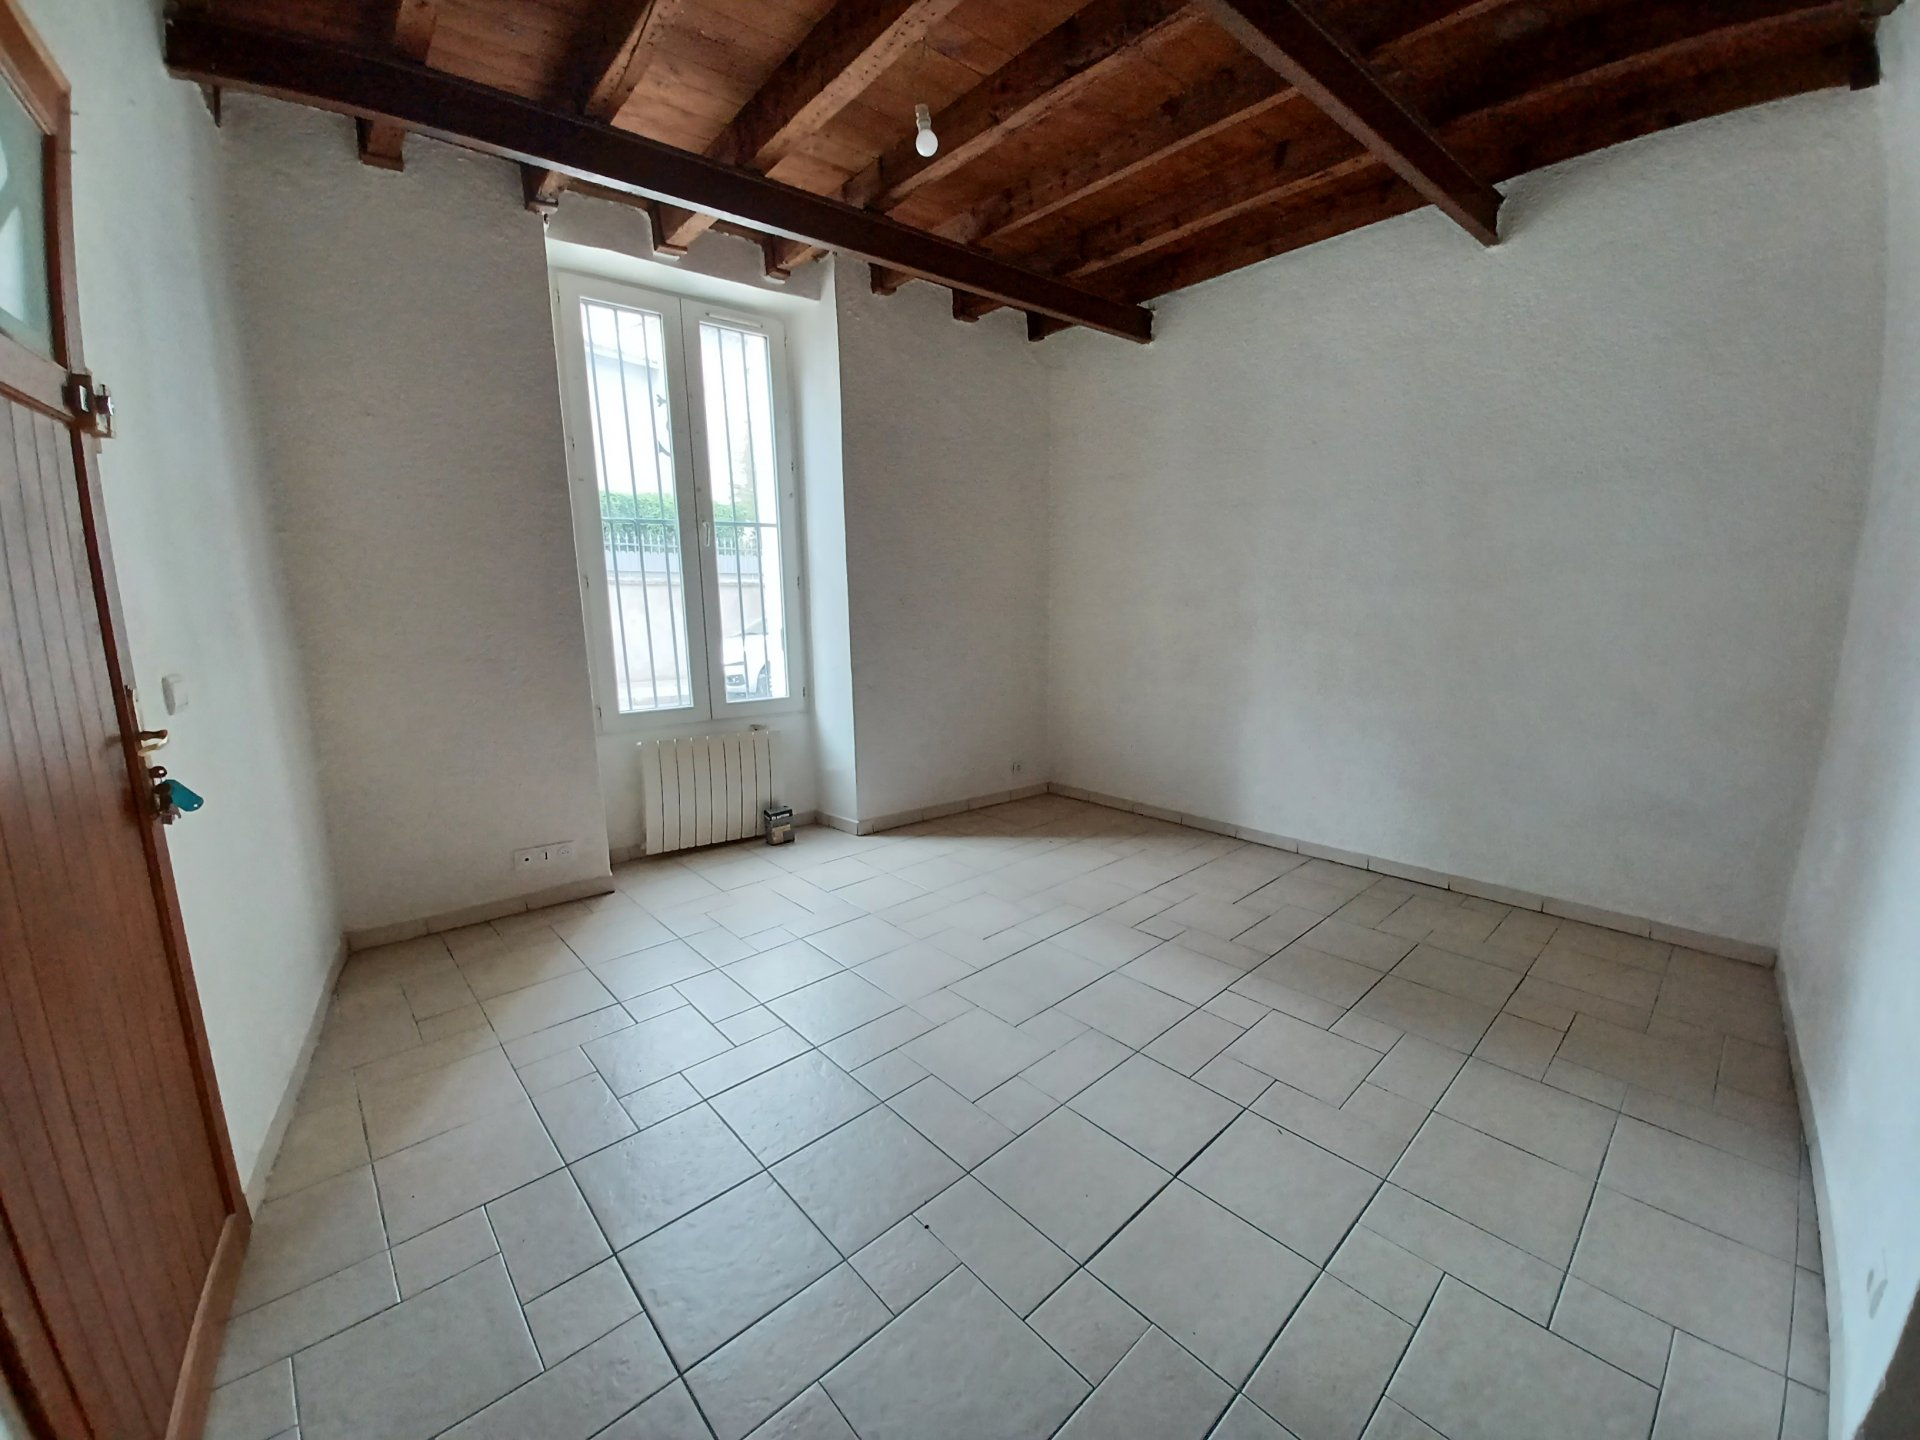 Location Appartement TARASCON Mandat : 0764